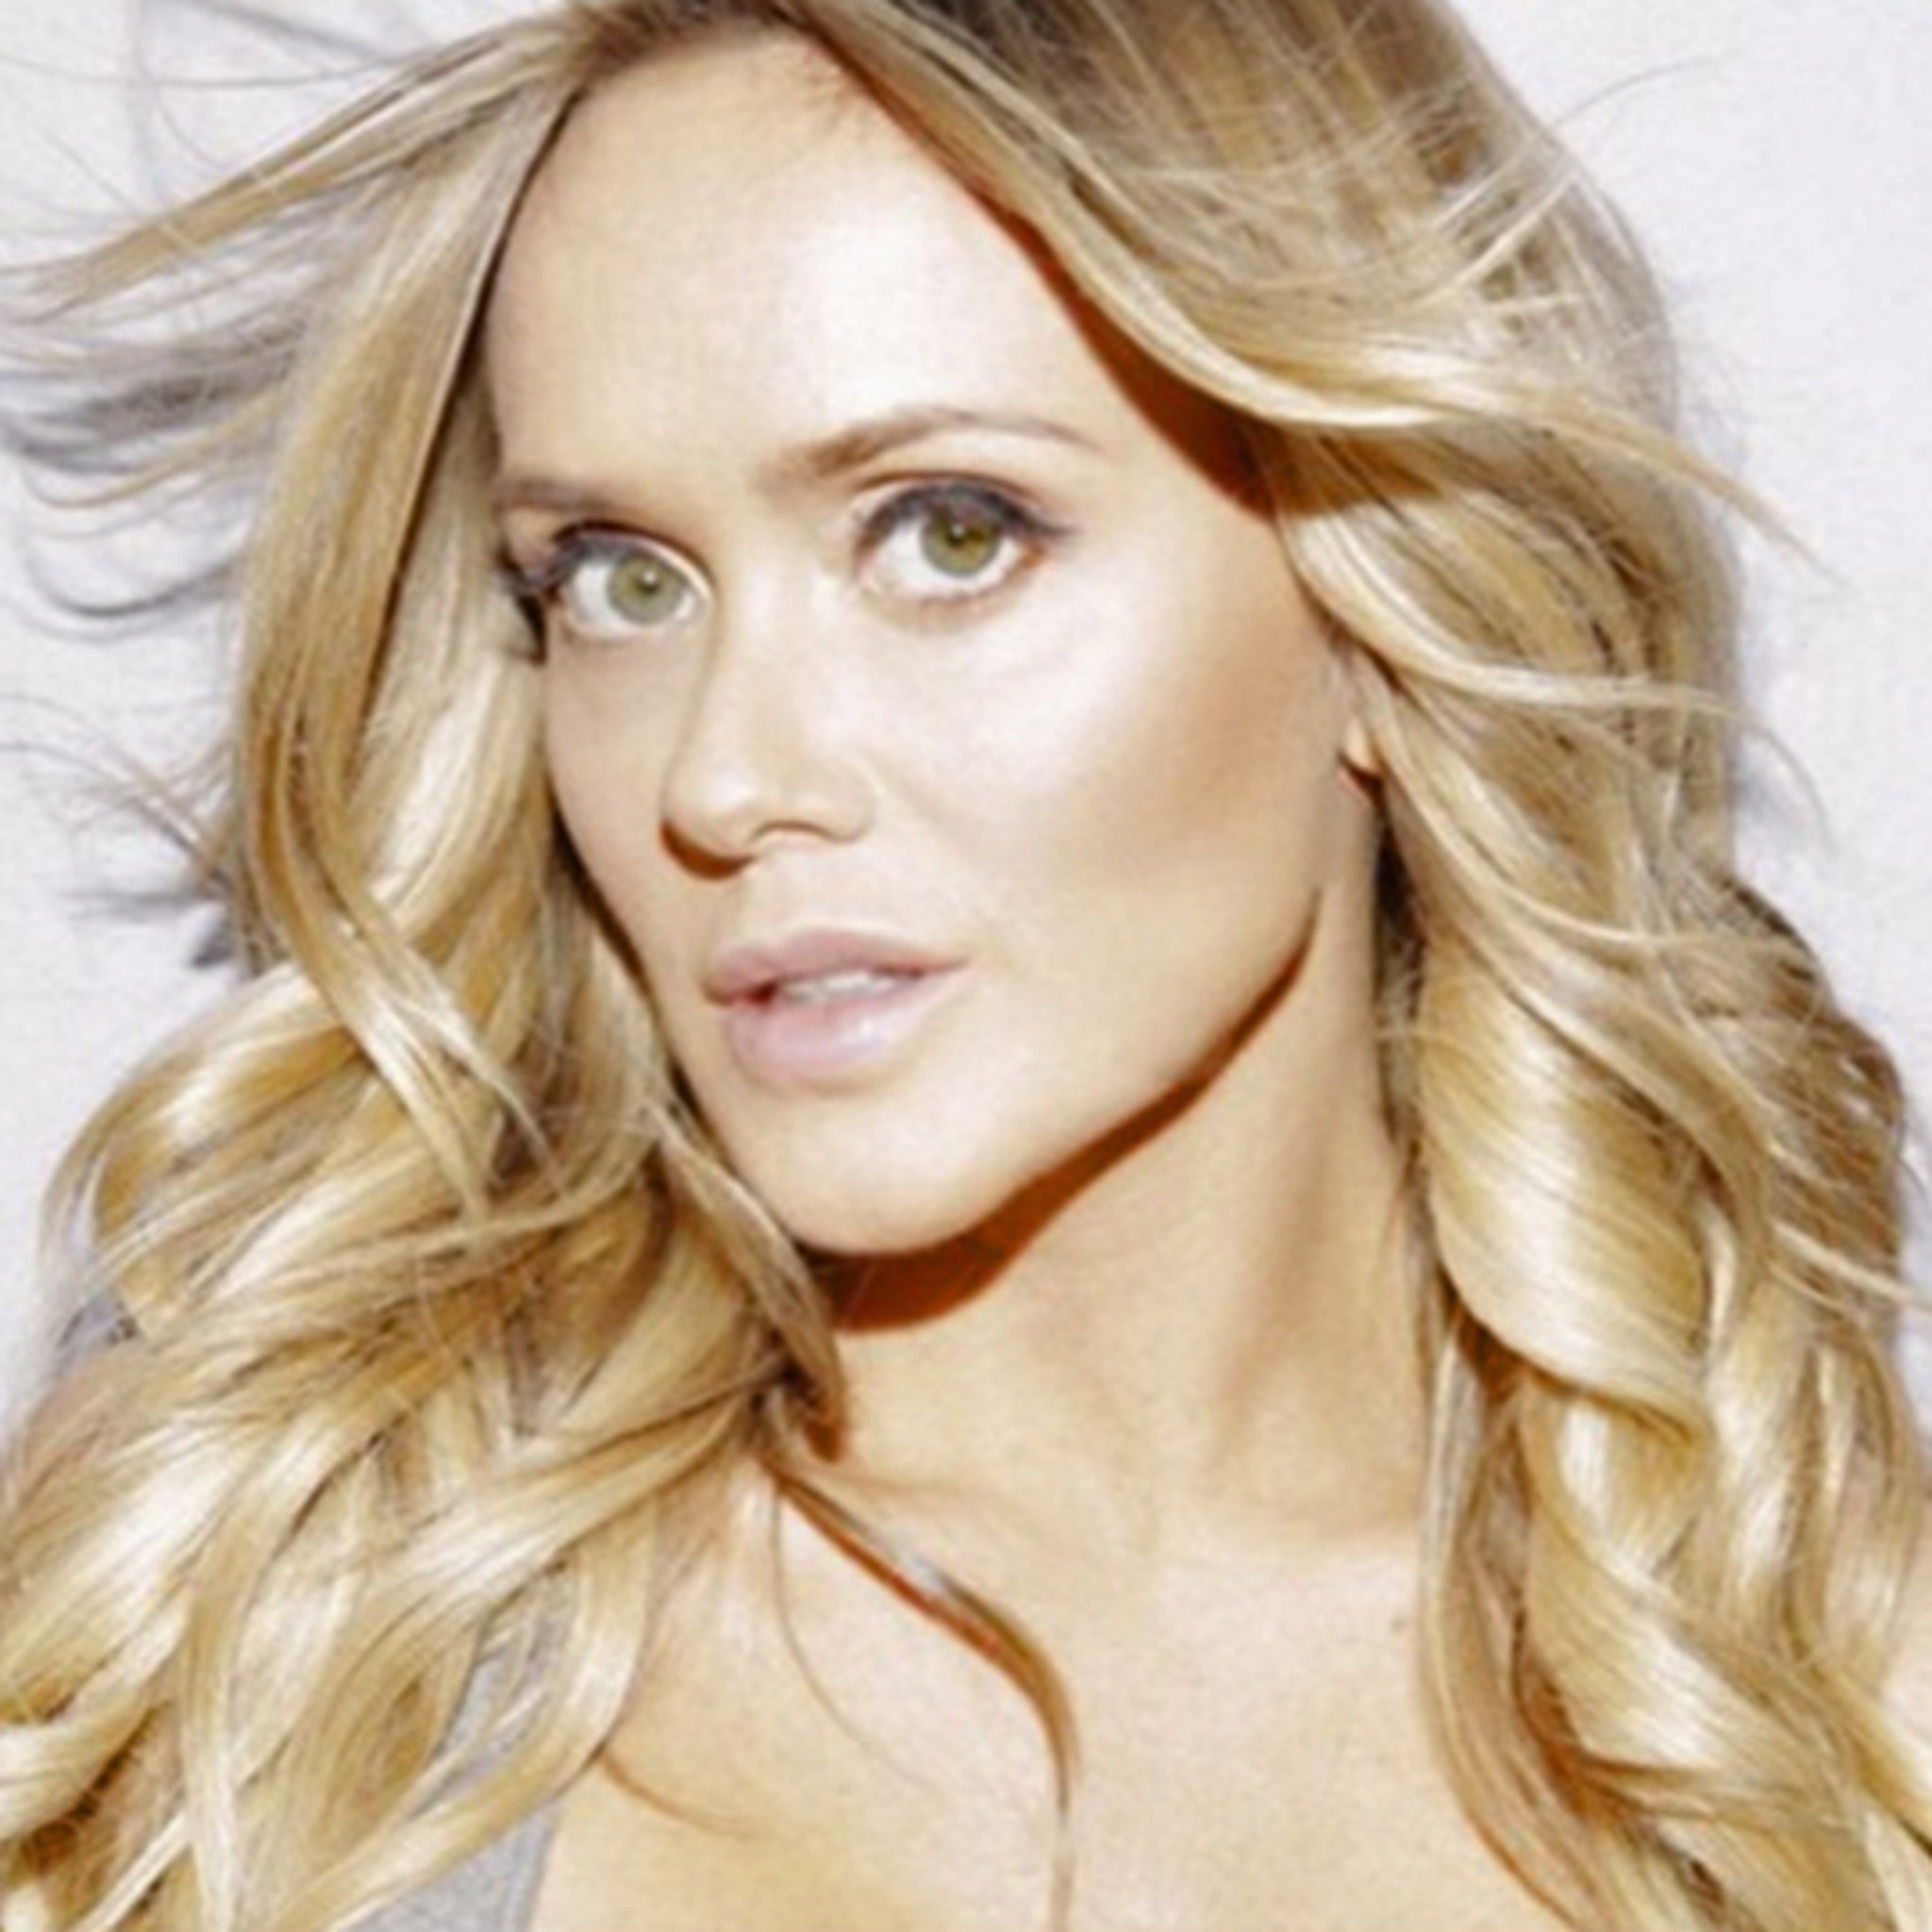 Model Katie May: Brutal Fall During Photo Shoot Caused Neck Pain